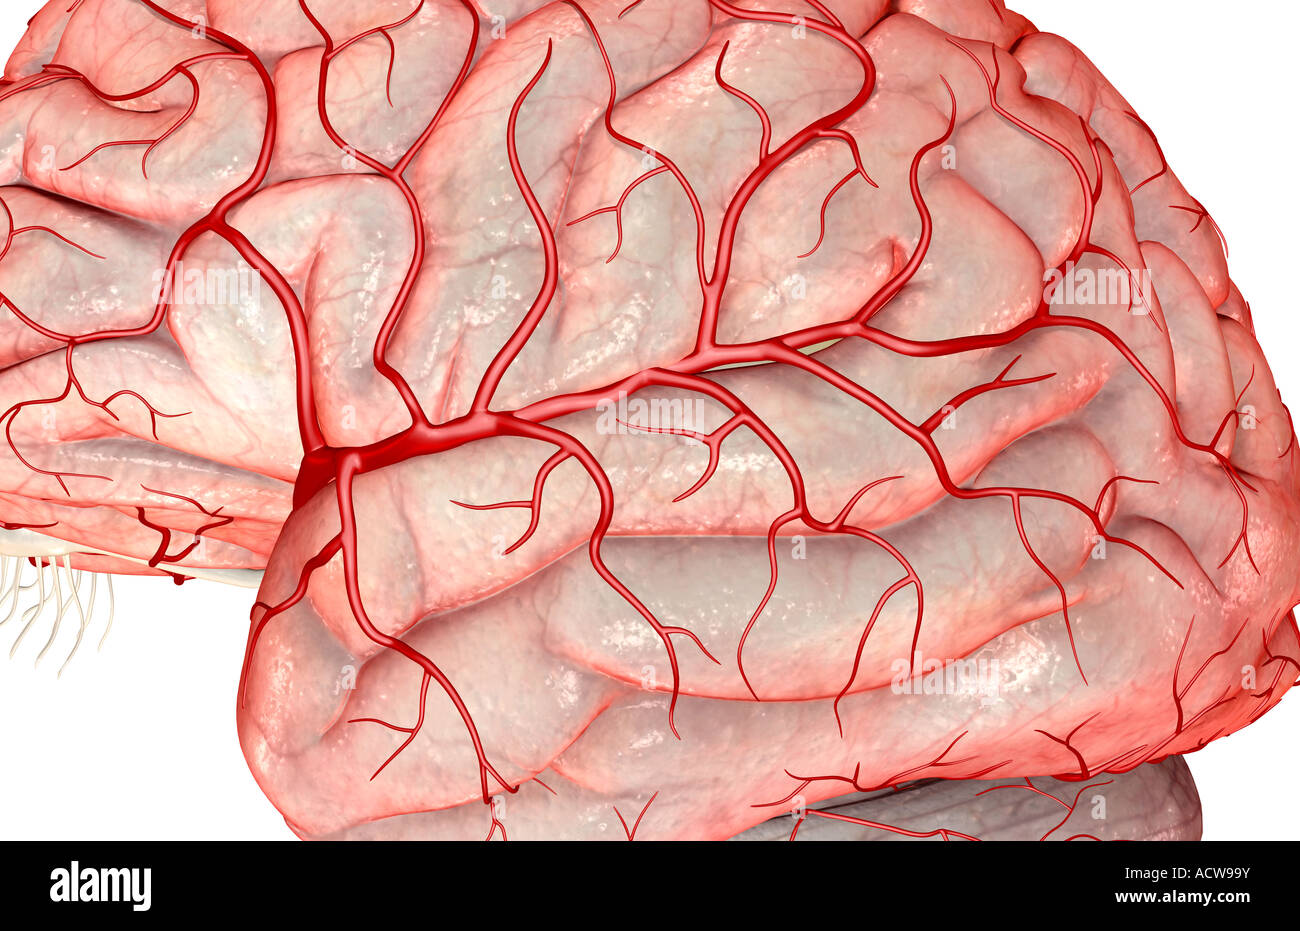 Middle cerebral artery Stock Photo: 13233926 - Alamy